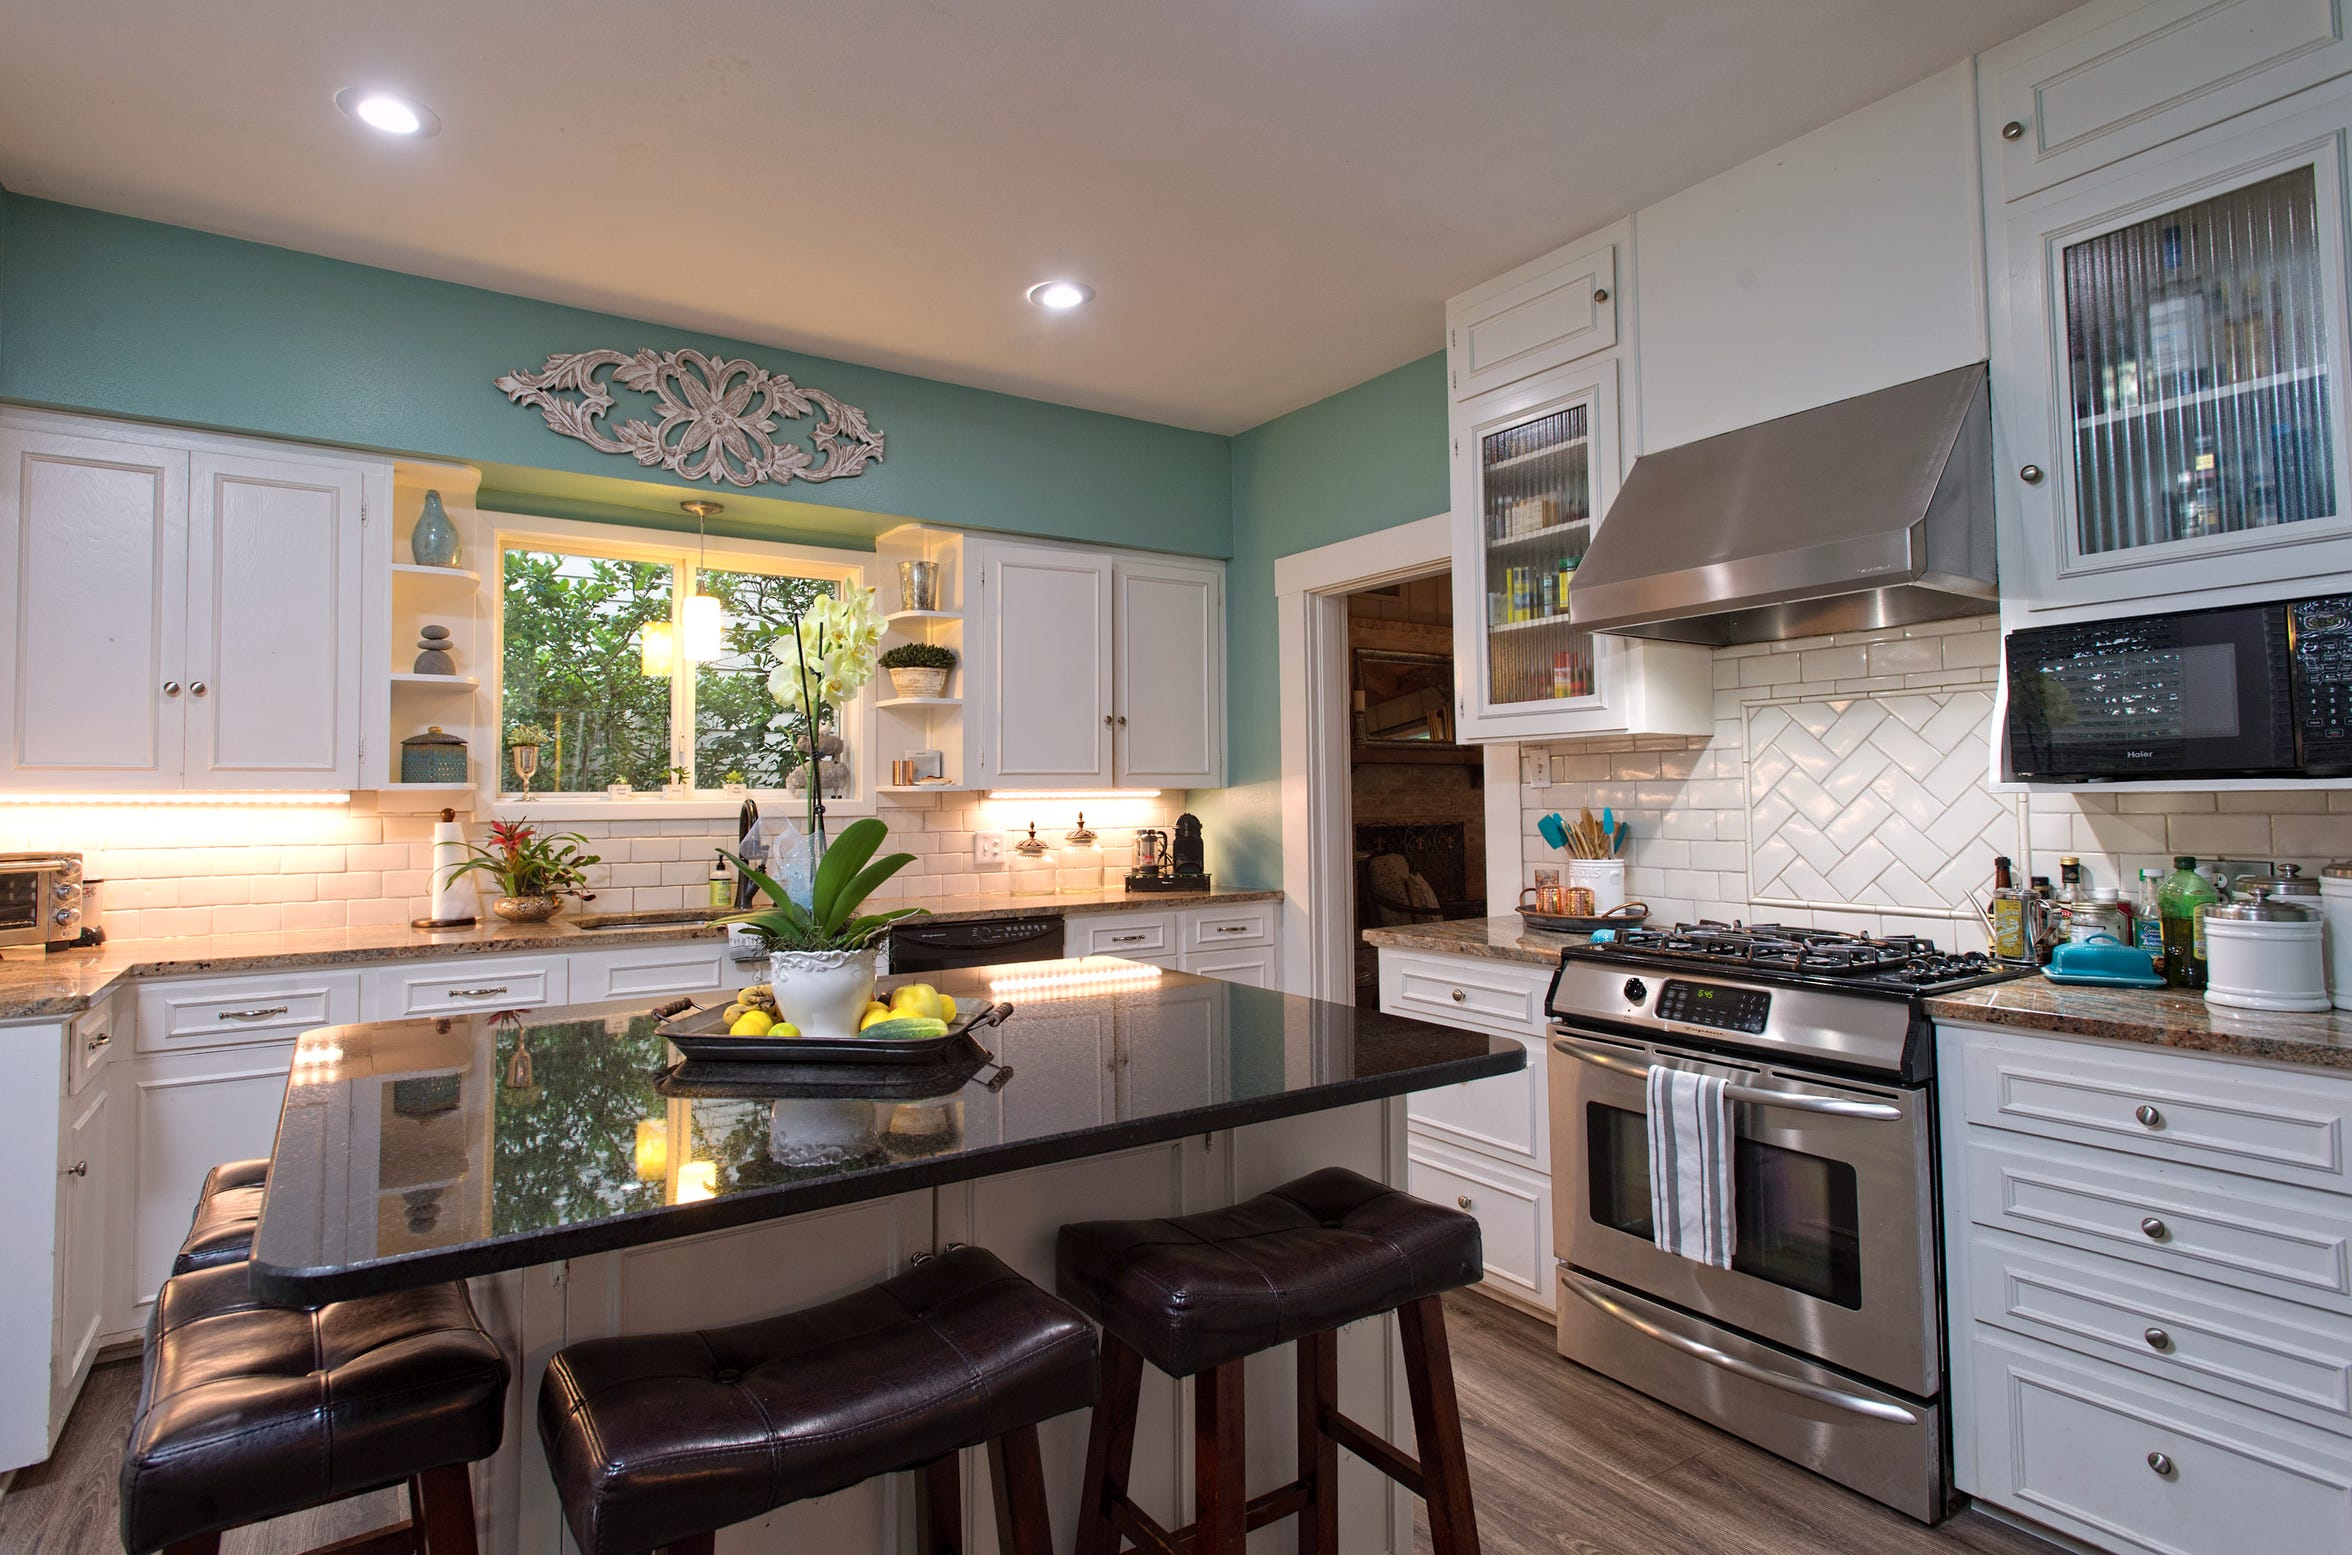 The bright and cheerful kitchen features a large granite topped island, granite counters, stainless steel appliances and custom tile and cabinetry